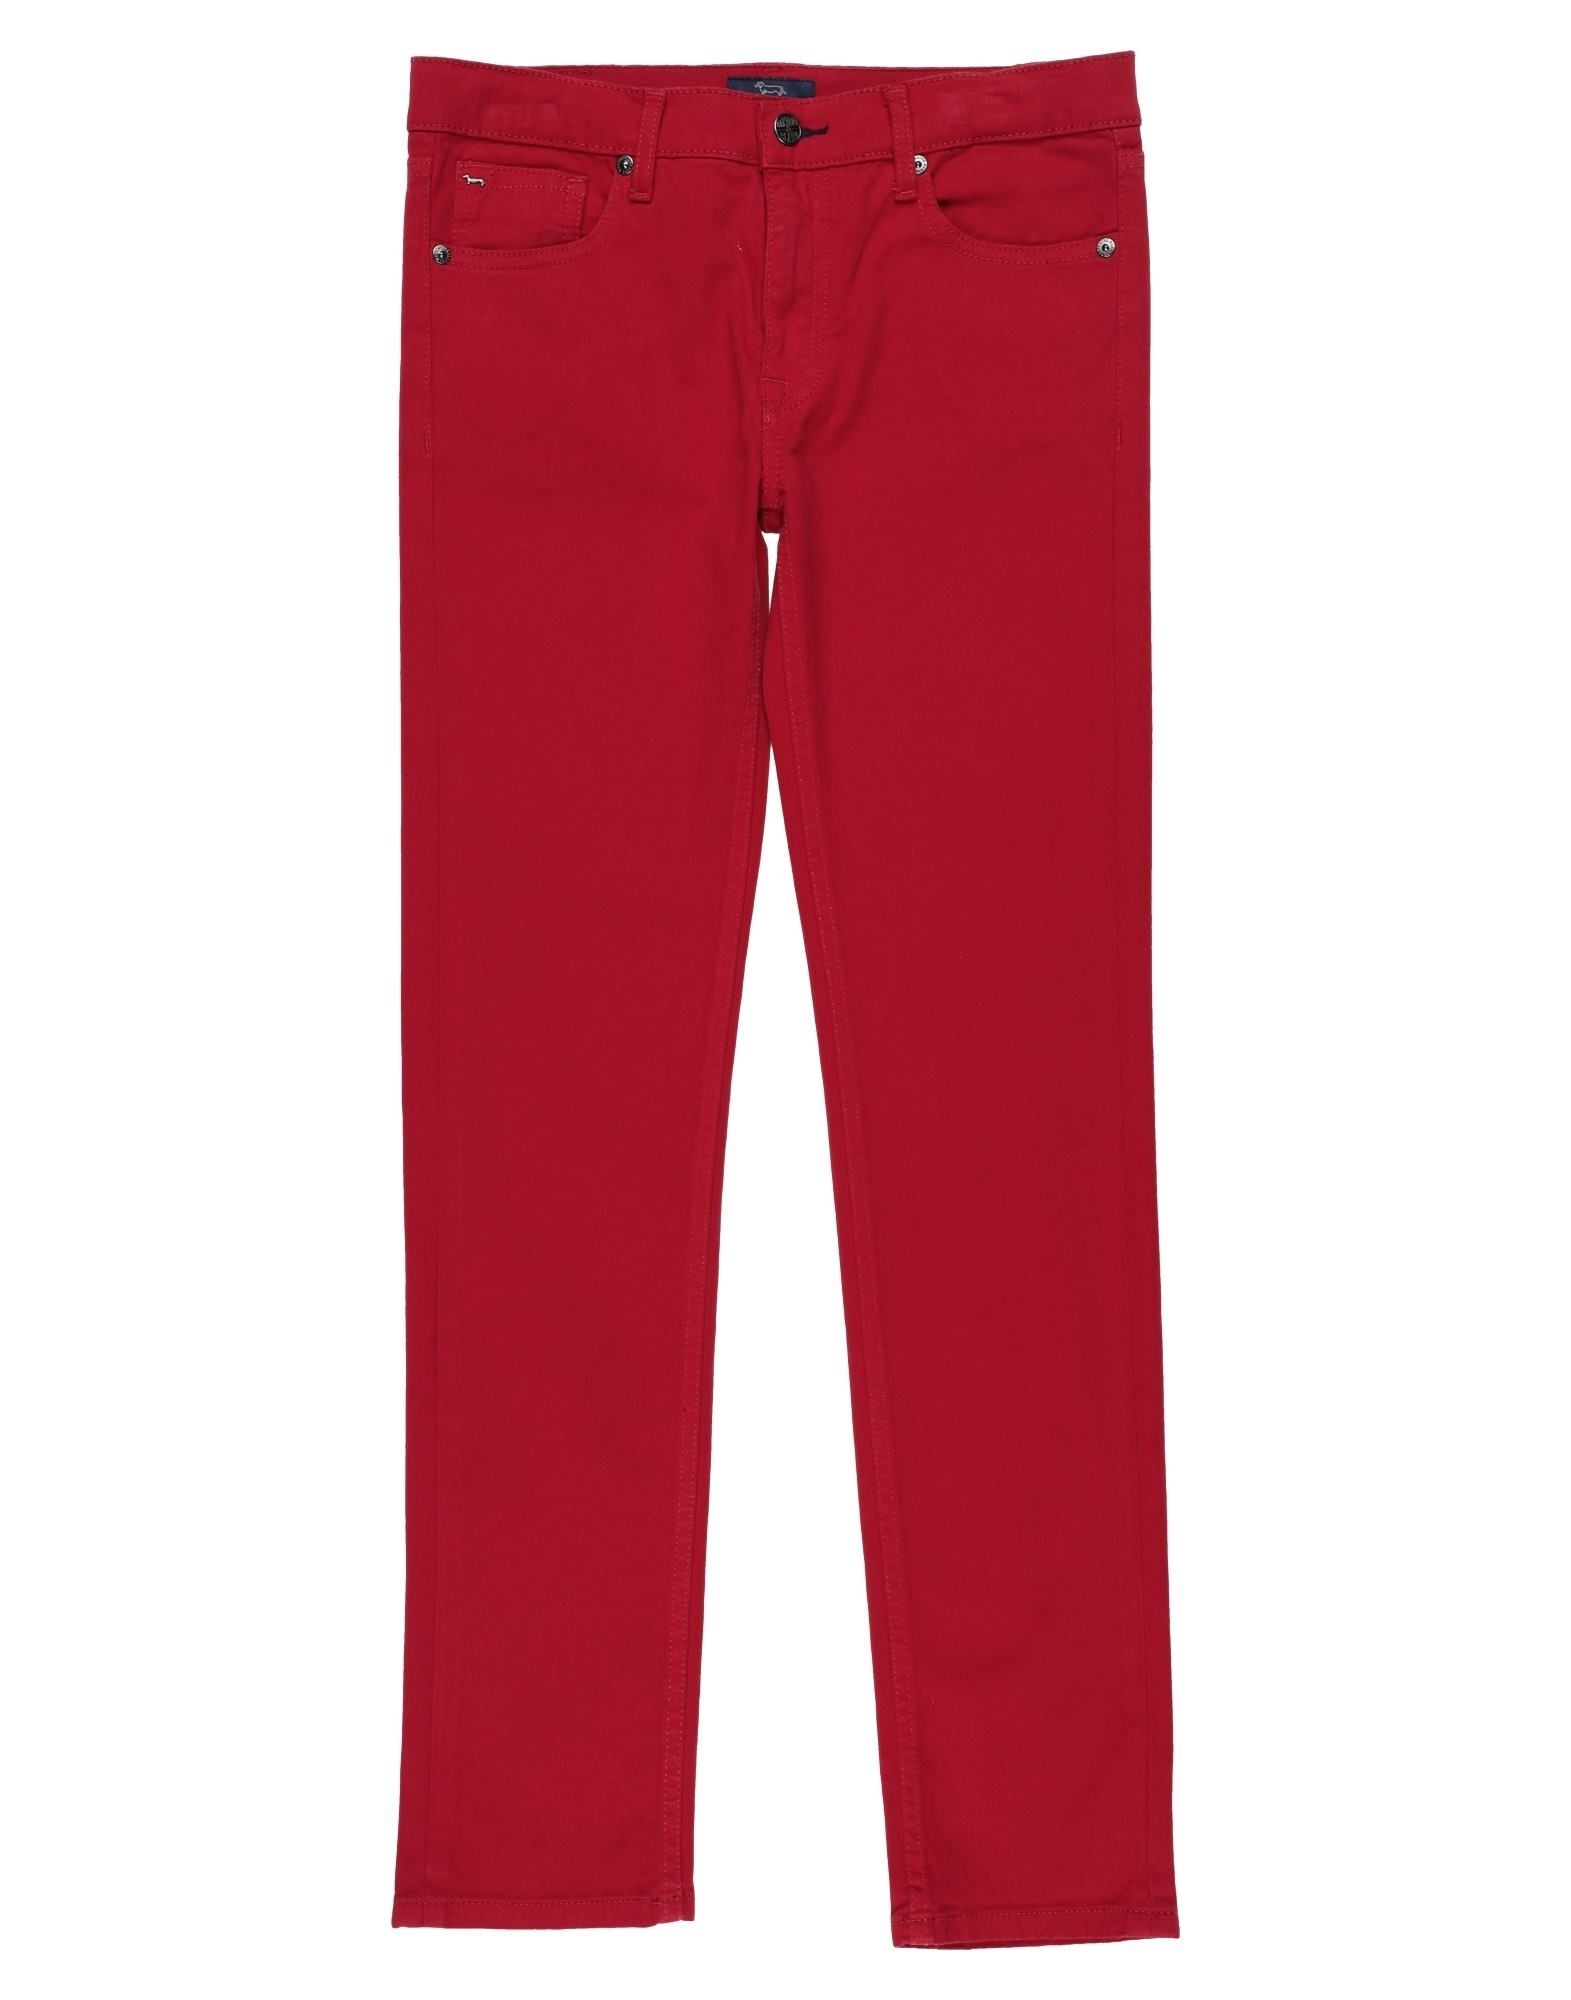 Harmont & Blaine Kids' Casual Pants In Red